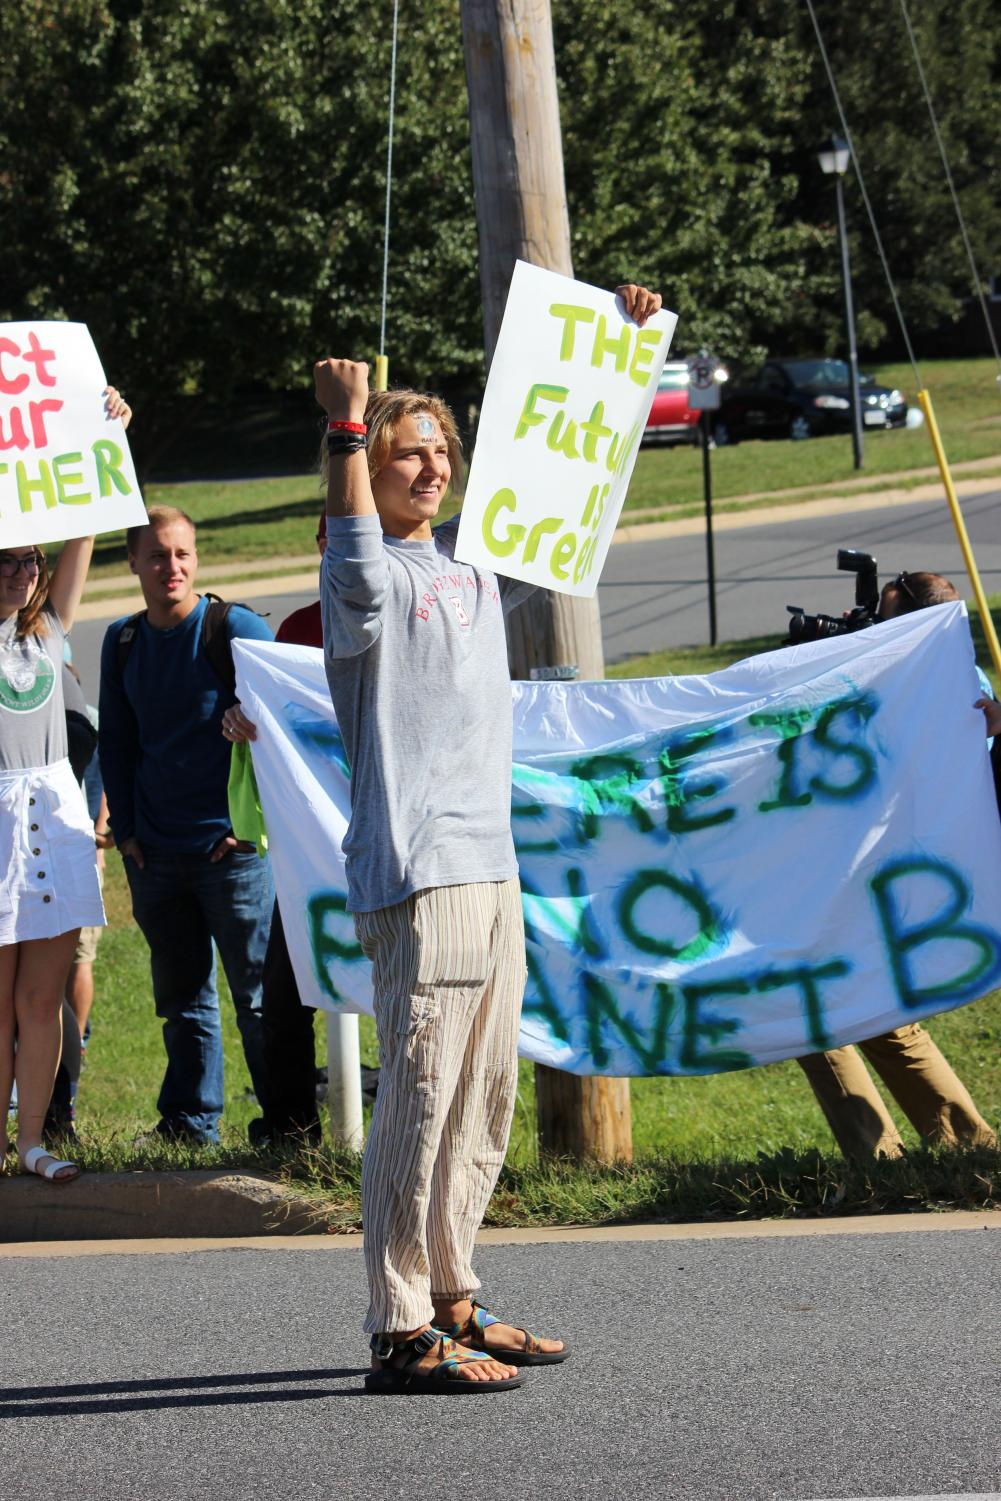 Bridgewater+senior+Hunter+Potts+participated+in+the+strike+because%2C+%E2%80%9CI+went+out+to+strike+because+I+want+to+bring+a+greater+awareness+of+what+climate+change+is%2C+and+how+much+of+a+greater+impact+it+has+on+the+world.%E2%80%9D